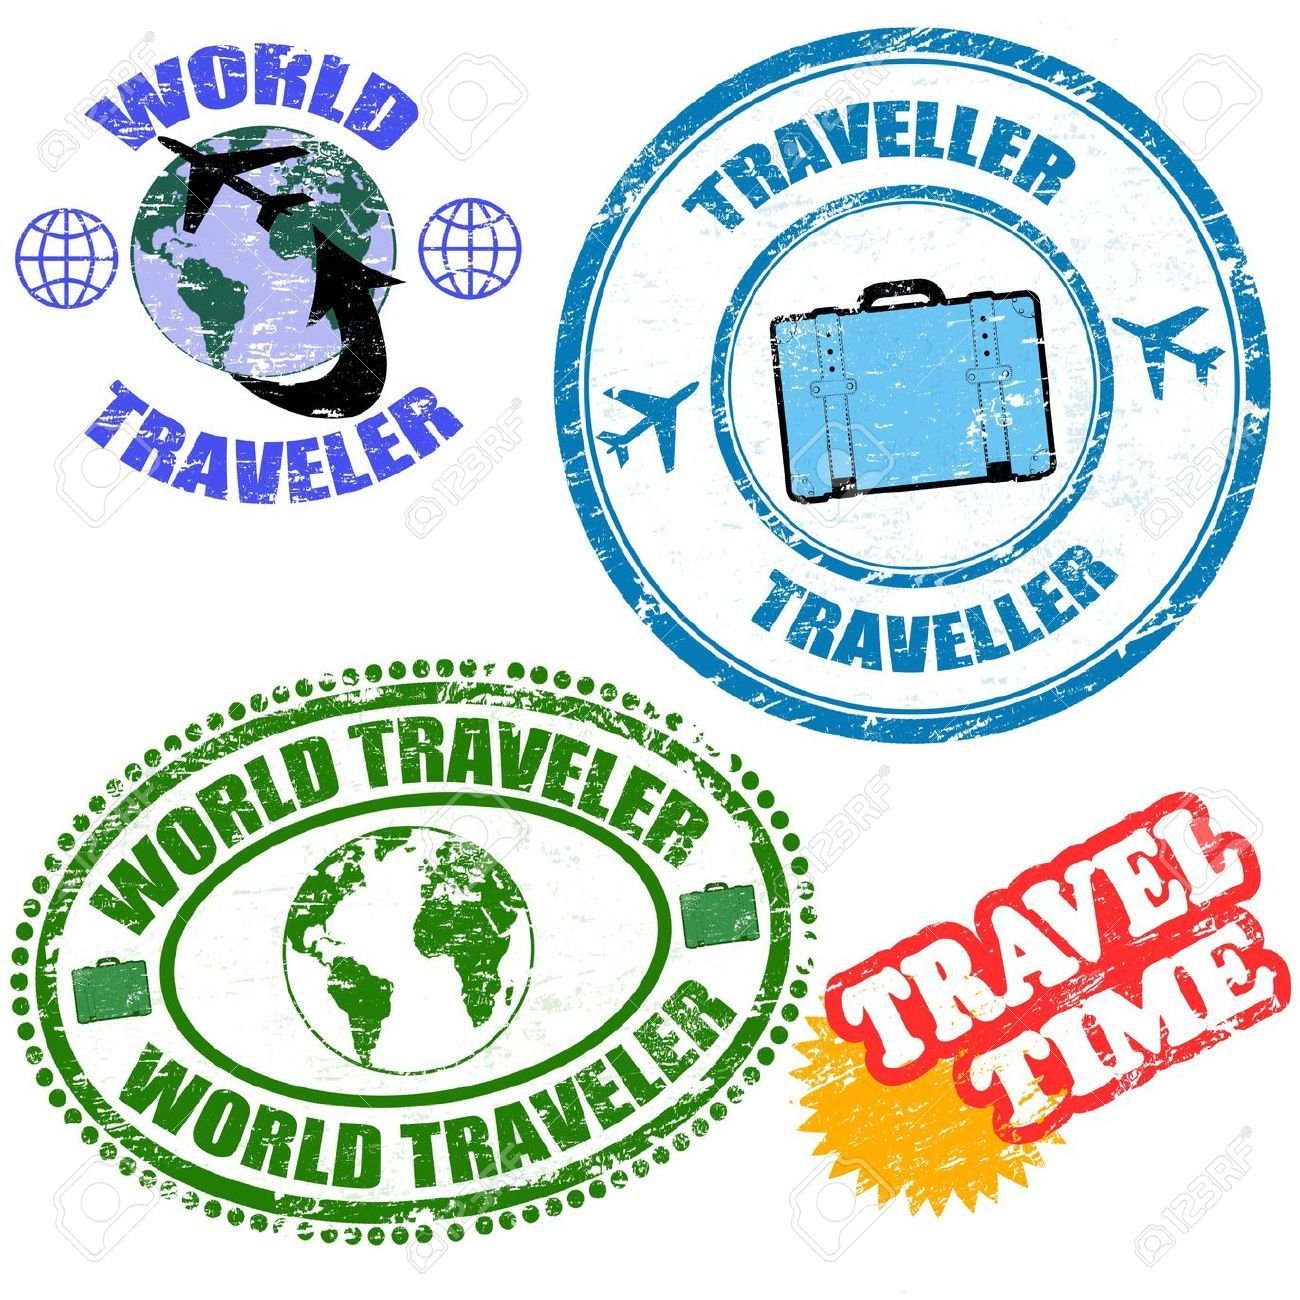 Suitcase clipart travel stamp #12.